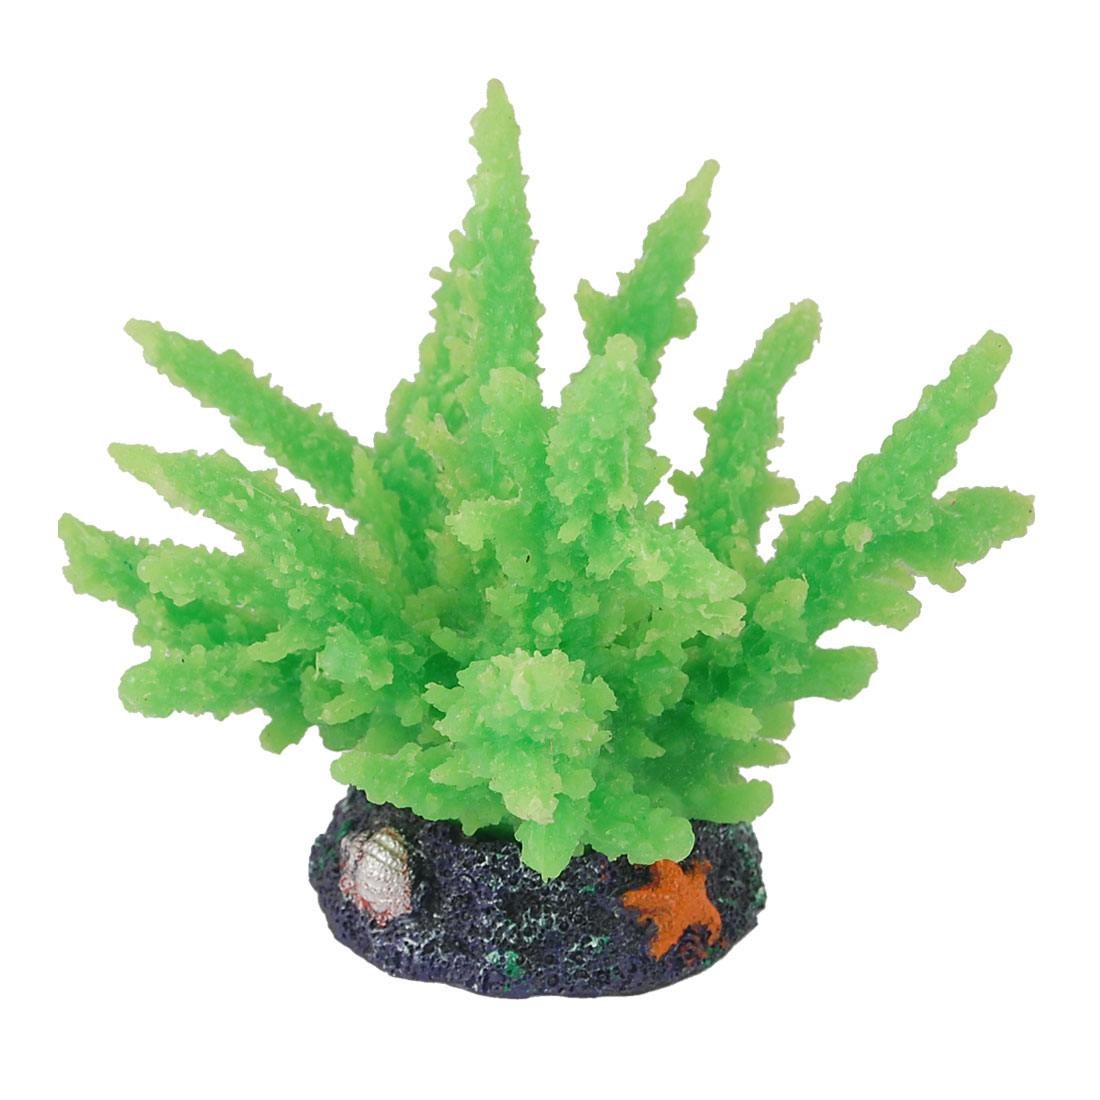 Star Seashell Pattern Silicone Fish Tank Decoration Coral Ornament Green